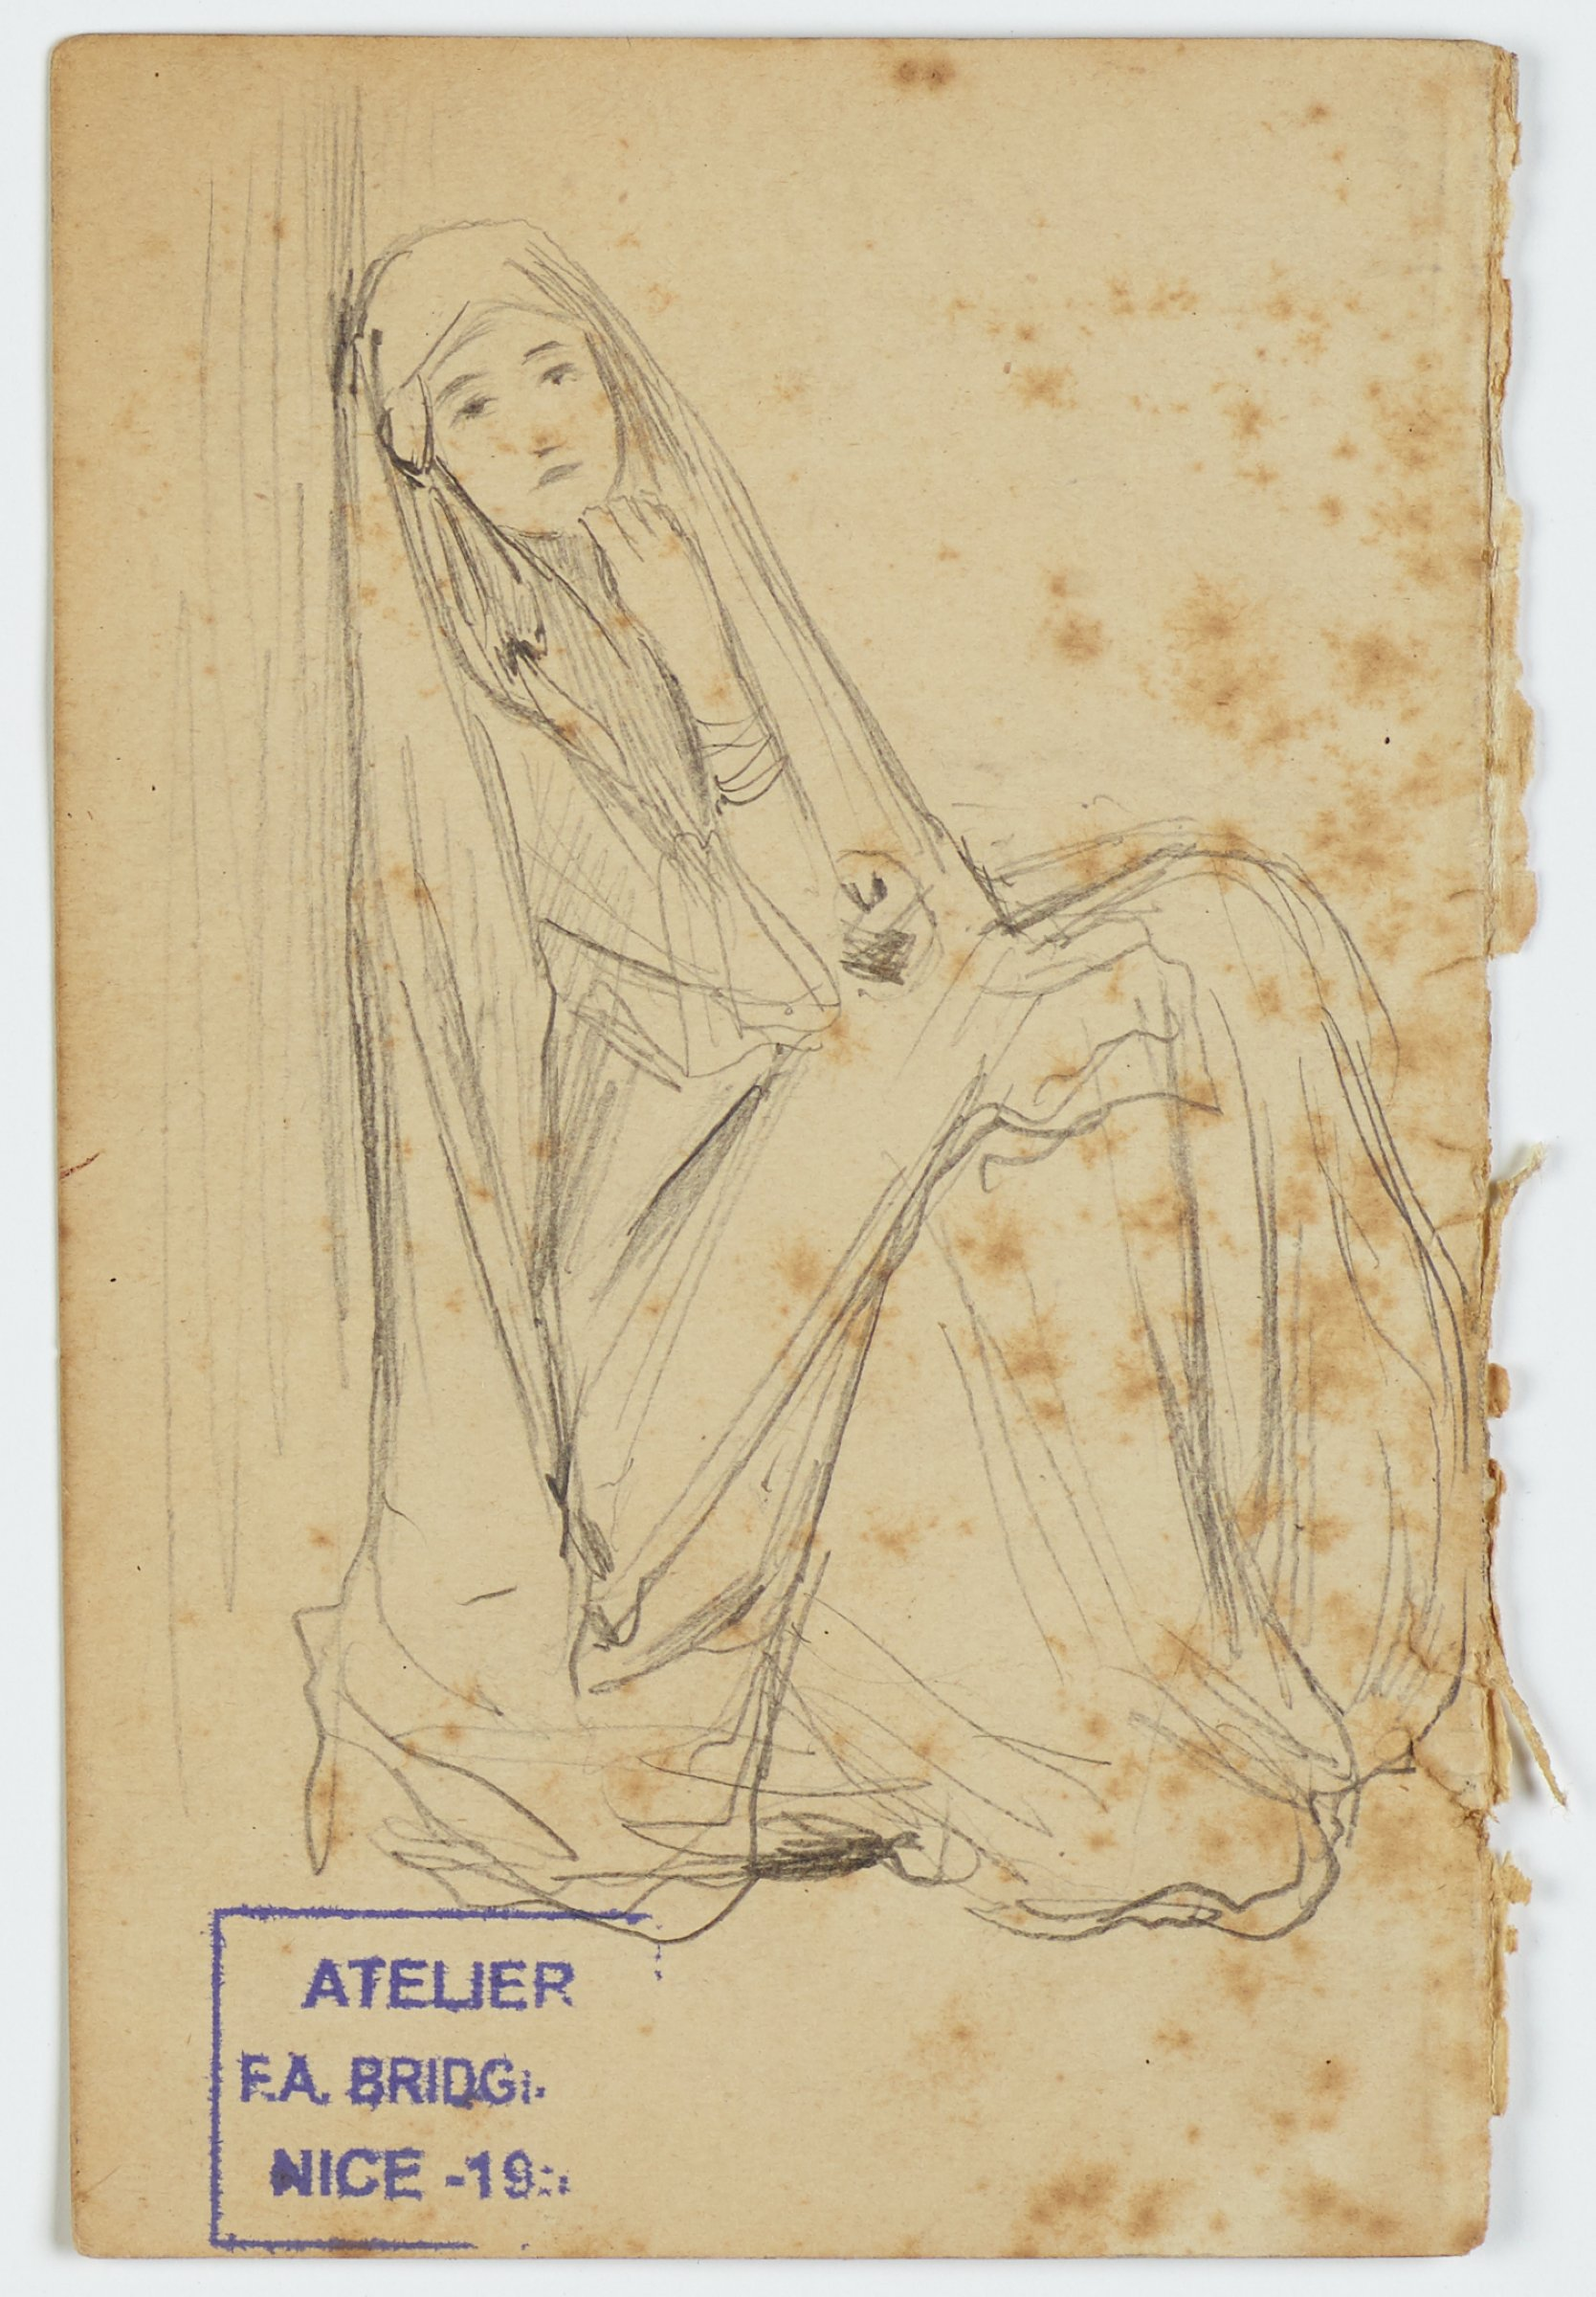 """On a page removed from George Romney & Co.'s """"Artistic Almanac"""" for 1887, this pencil sketch represents a woman draped in cloth with her head covered leaning against a wall."""